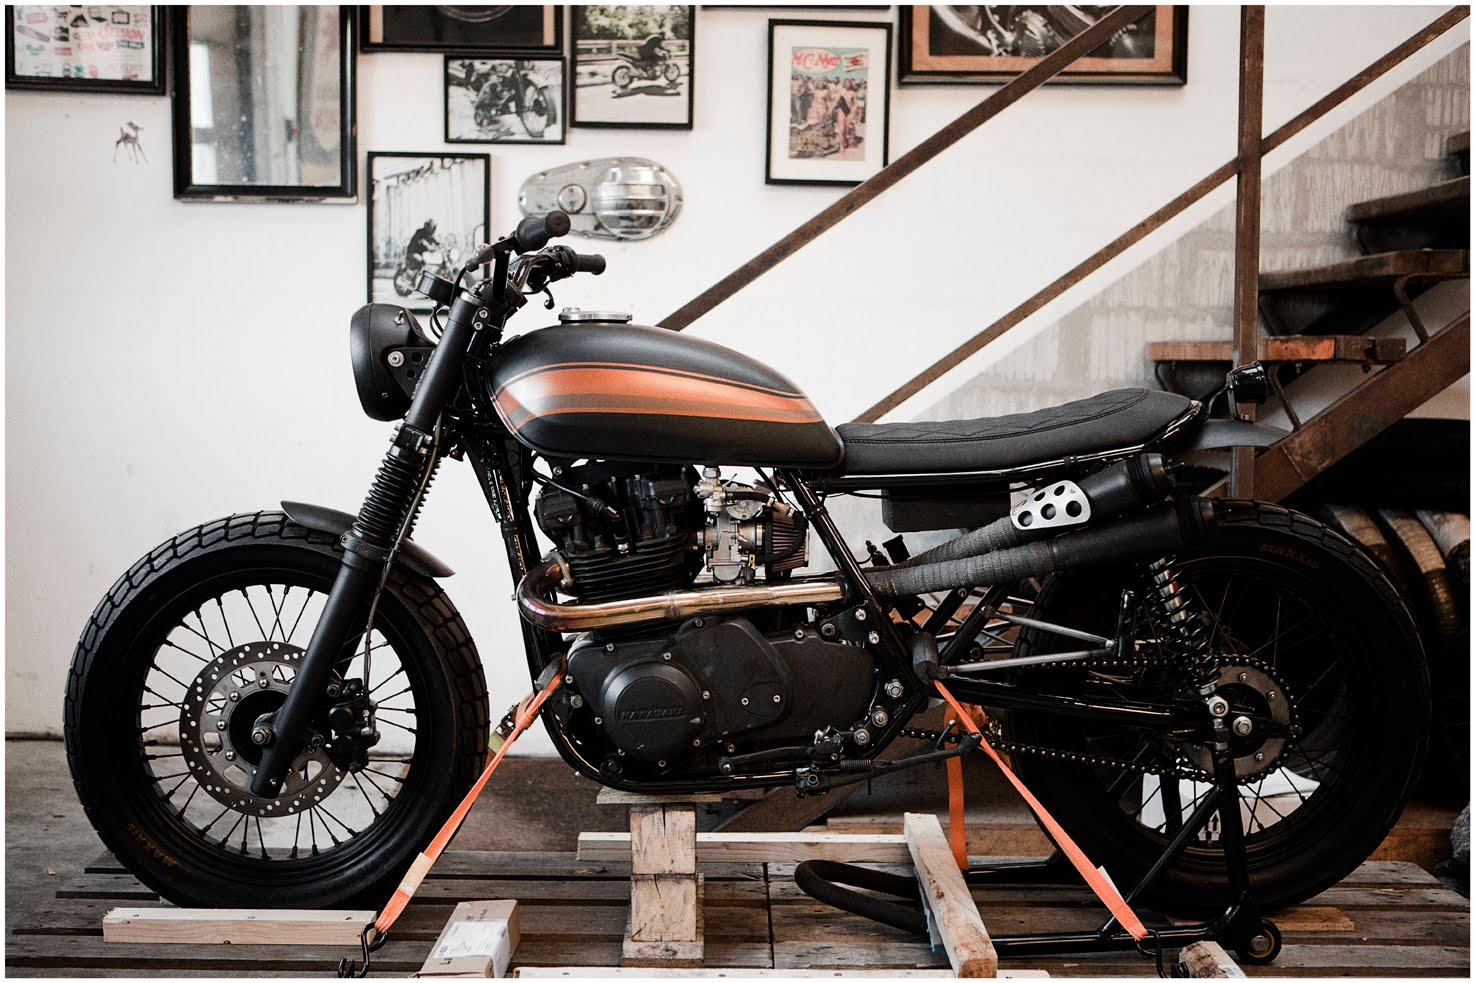 1973 tx650 cafe racer (paint ideas) | yamaha xs650 forum